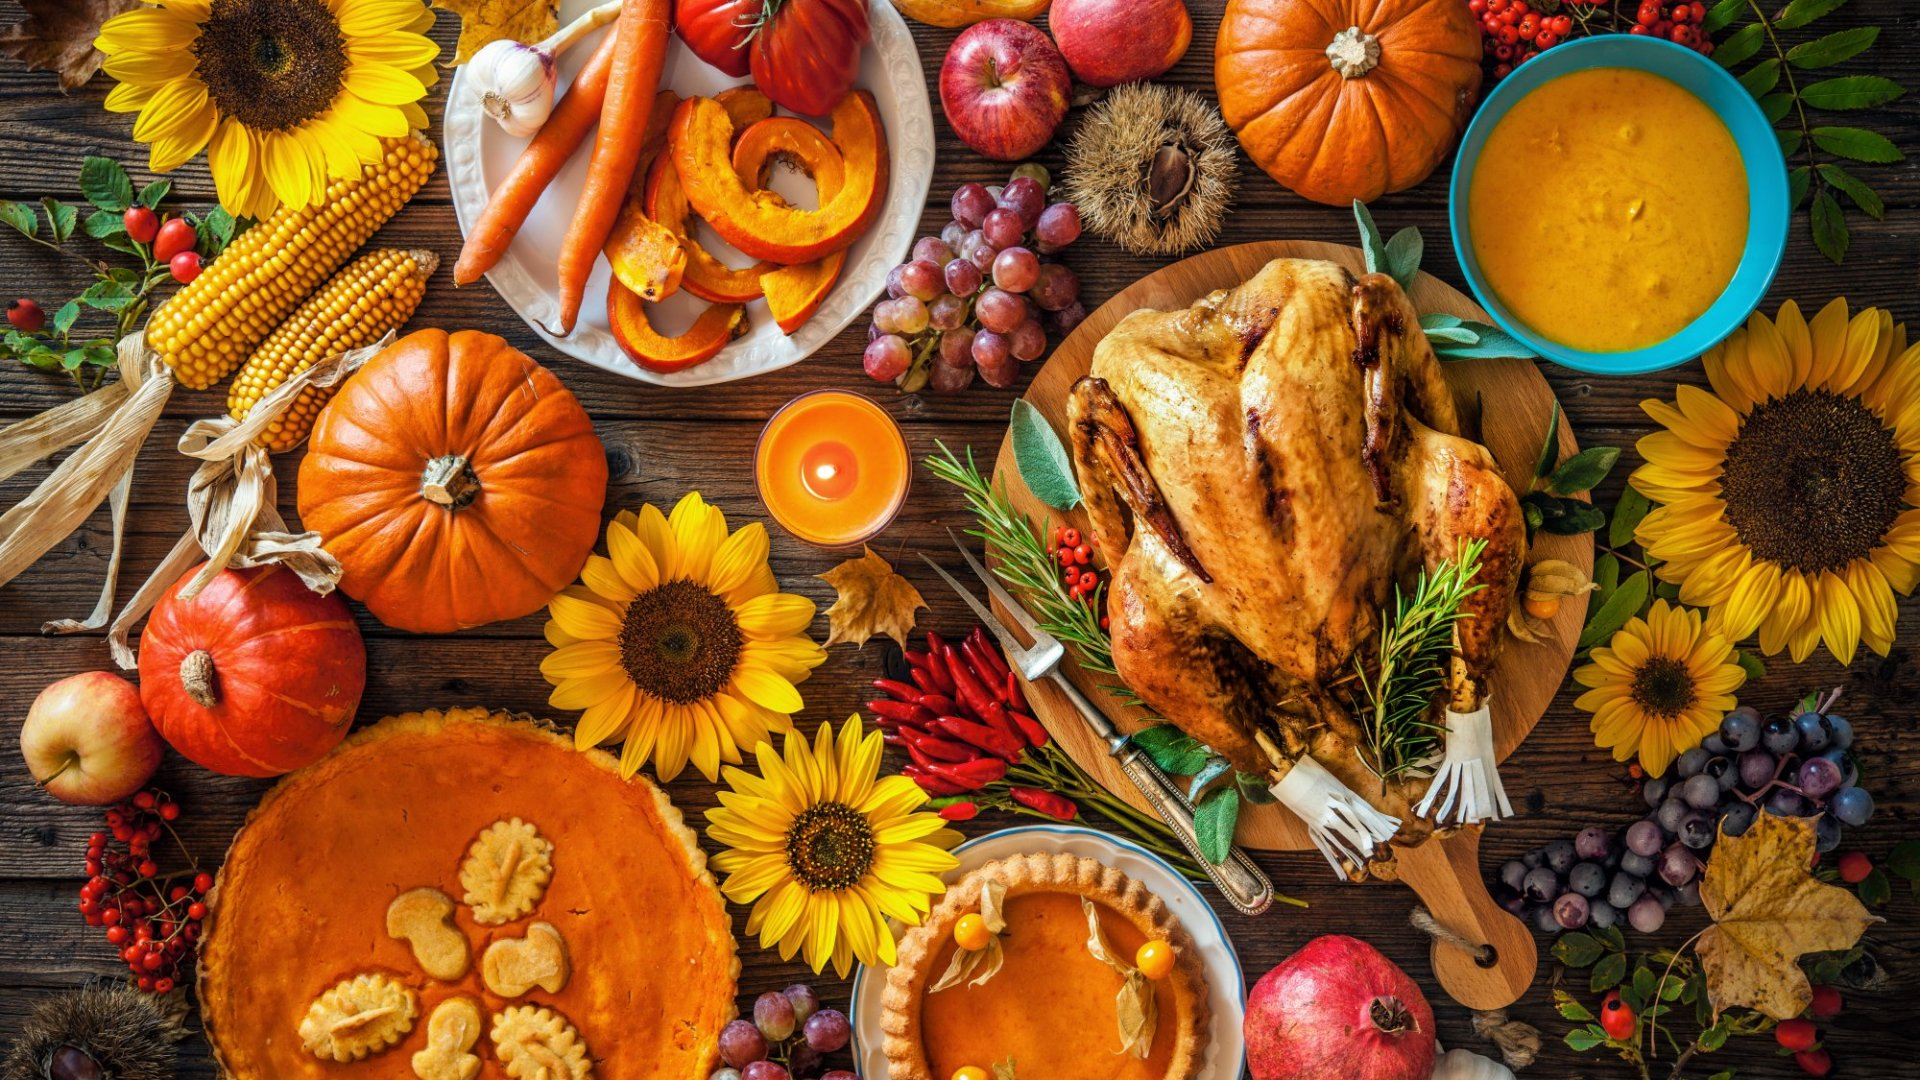 7 Tips for Getting Through Thanksgiving Even If You Don't Like It